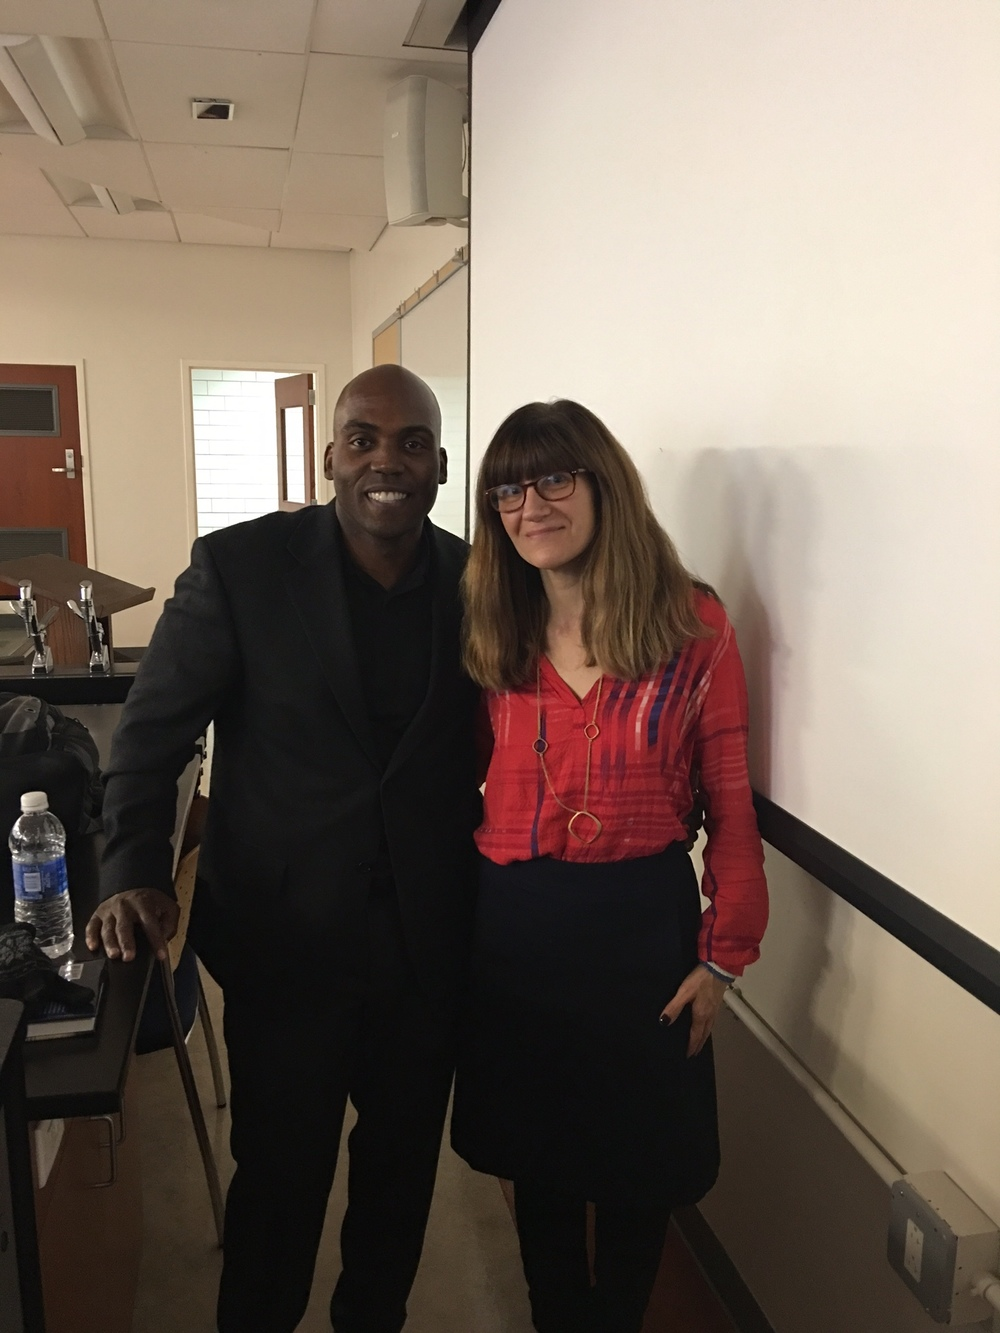 Profs. Yohuru Williams,  Fairfield University, and Emily Horowitz, SFC